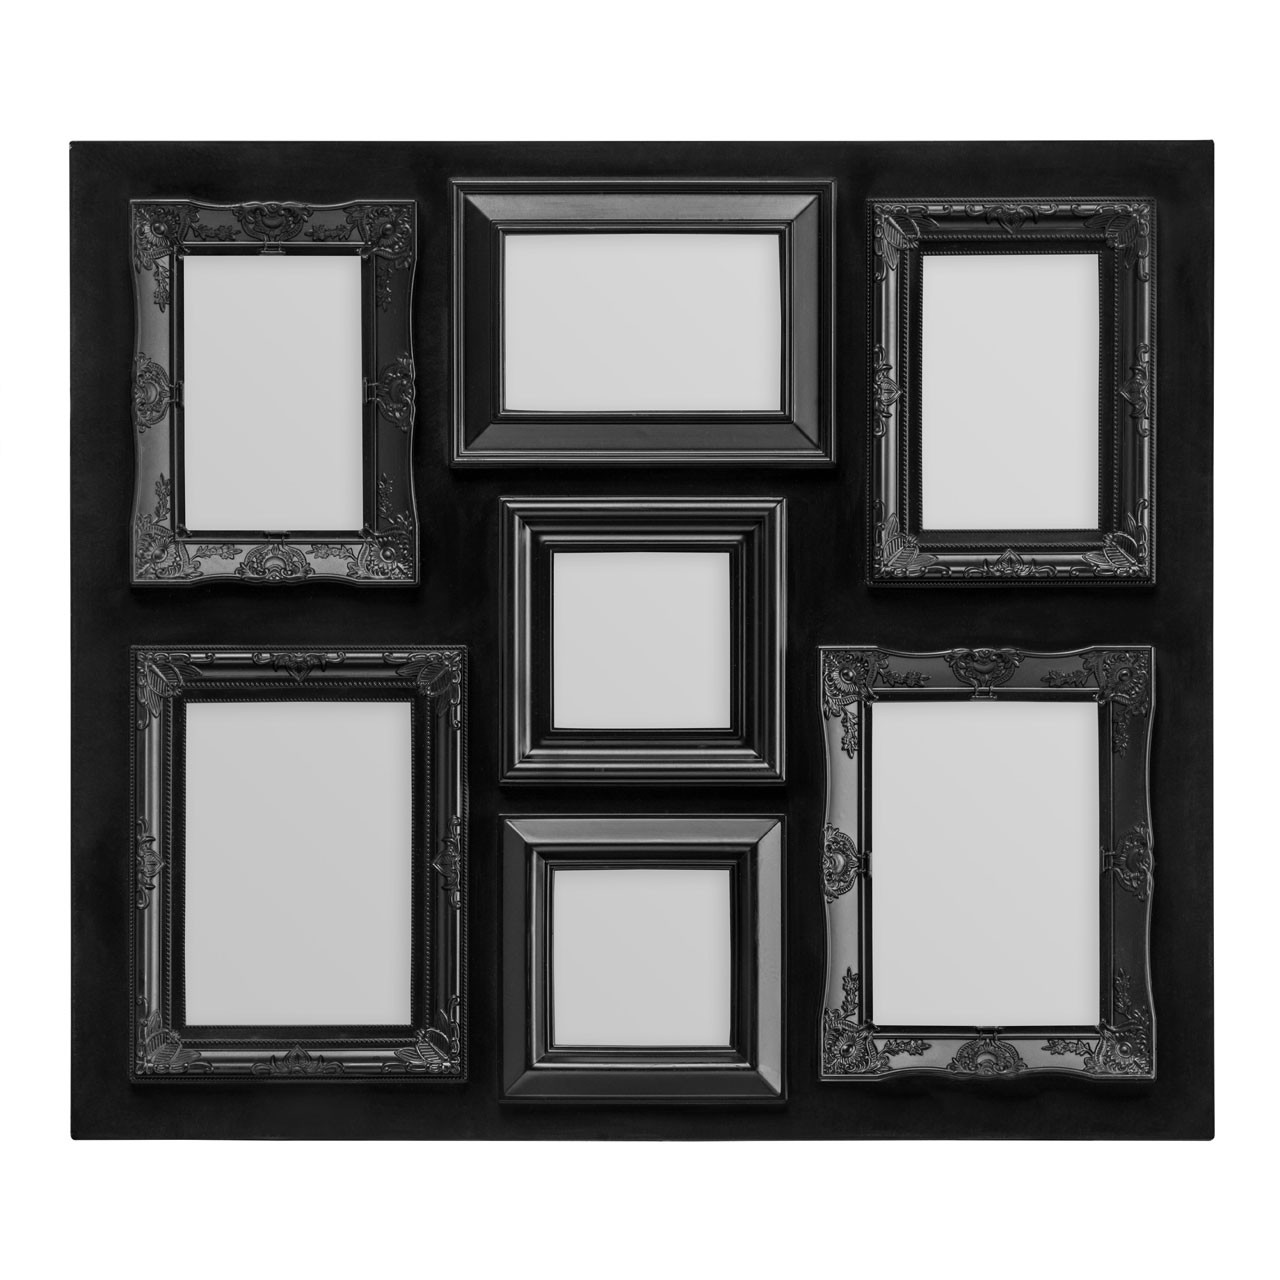 Prime Furnishing 7 Photos Plastic Photo Frame - Black